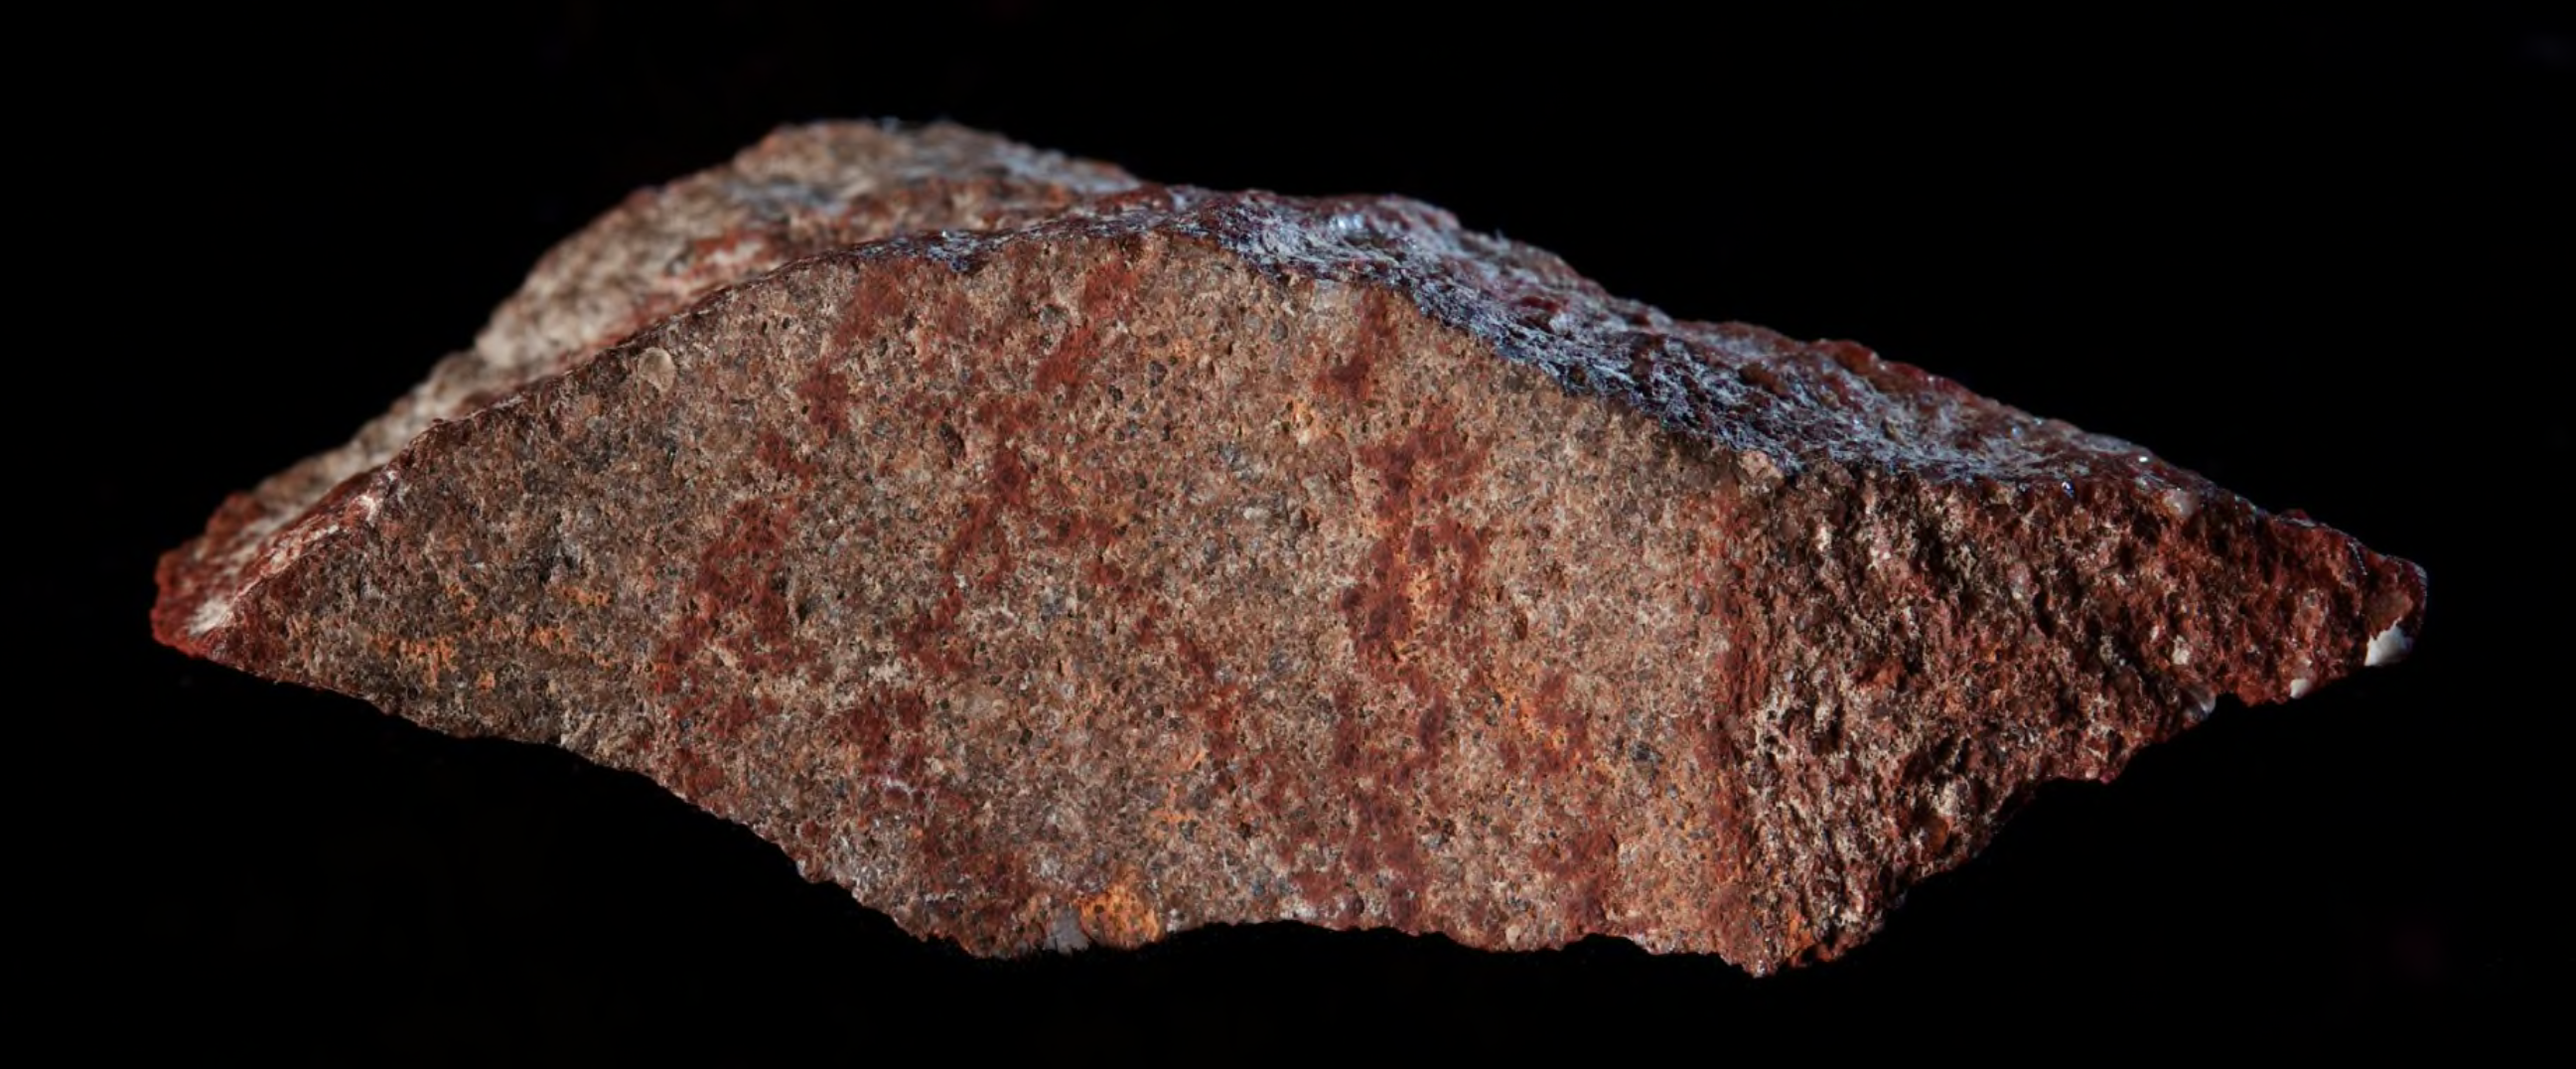 Line drawing with ochre pencil on stone, dating back 73,000 years